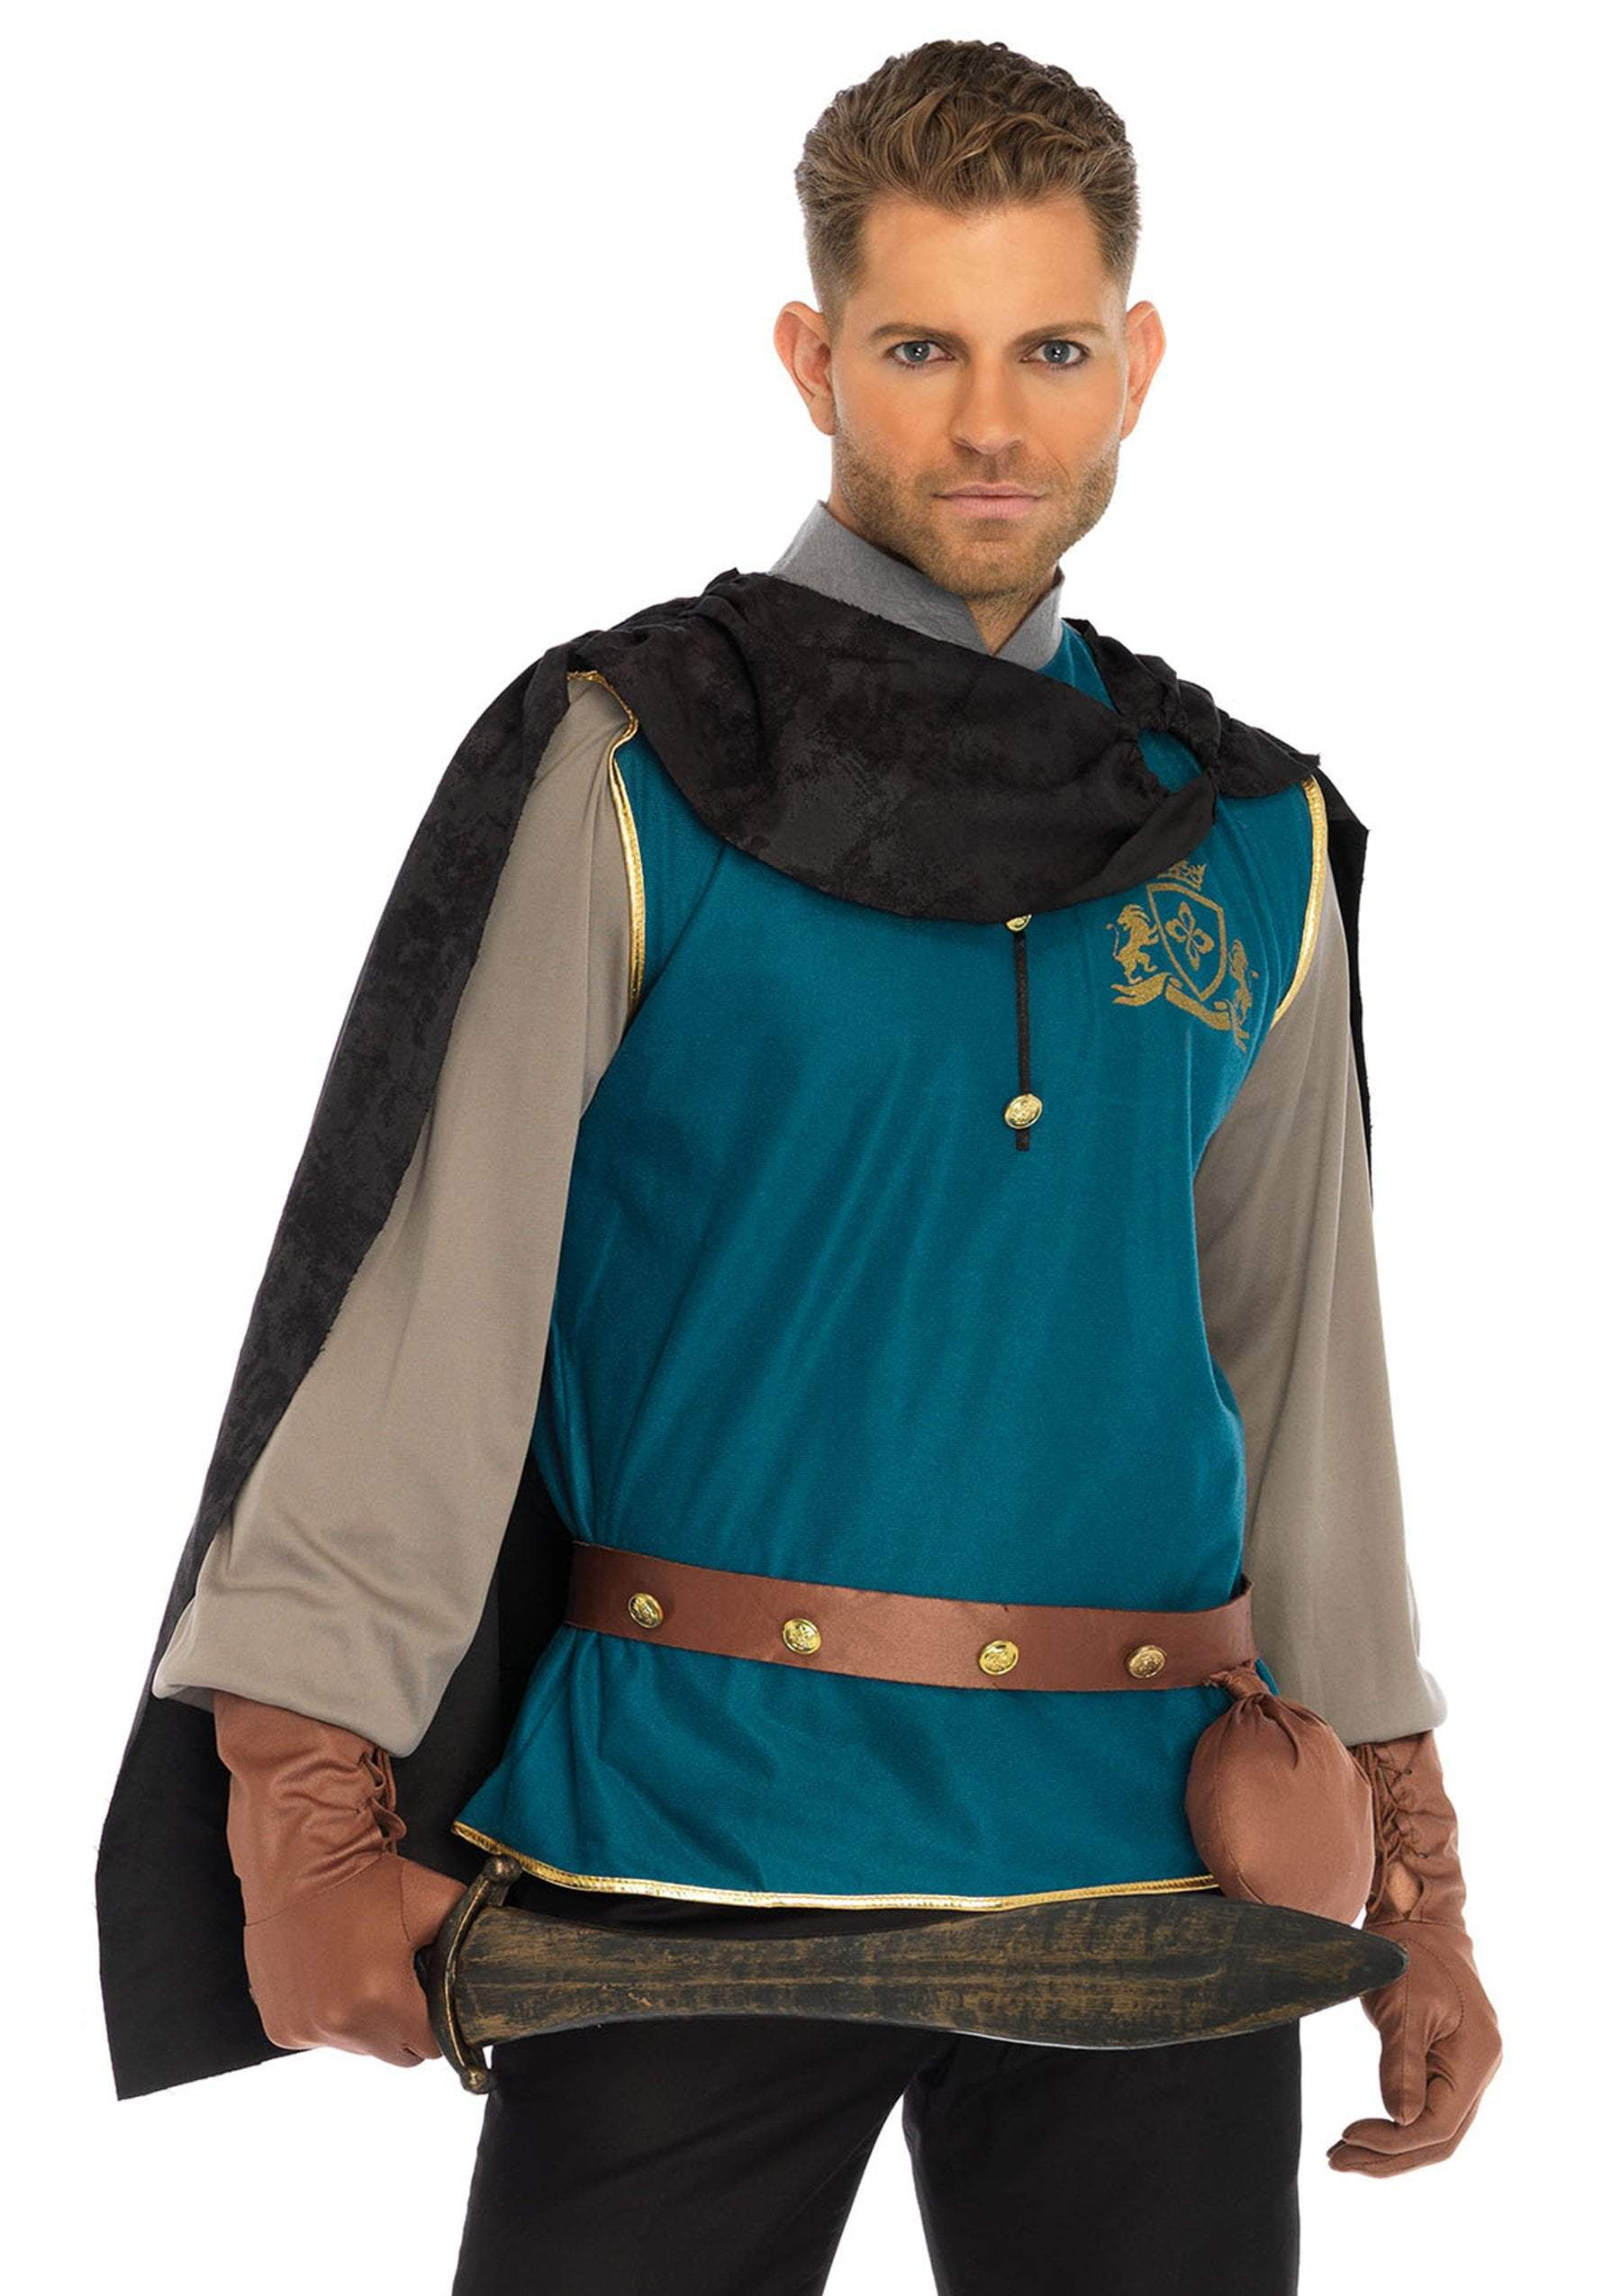 Leg Avenue Costumes MEDIUM/LARGE Adult Storybook Prince Cosutme